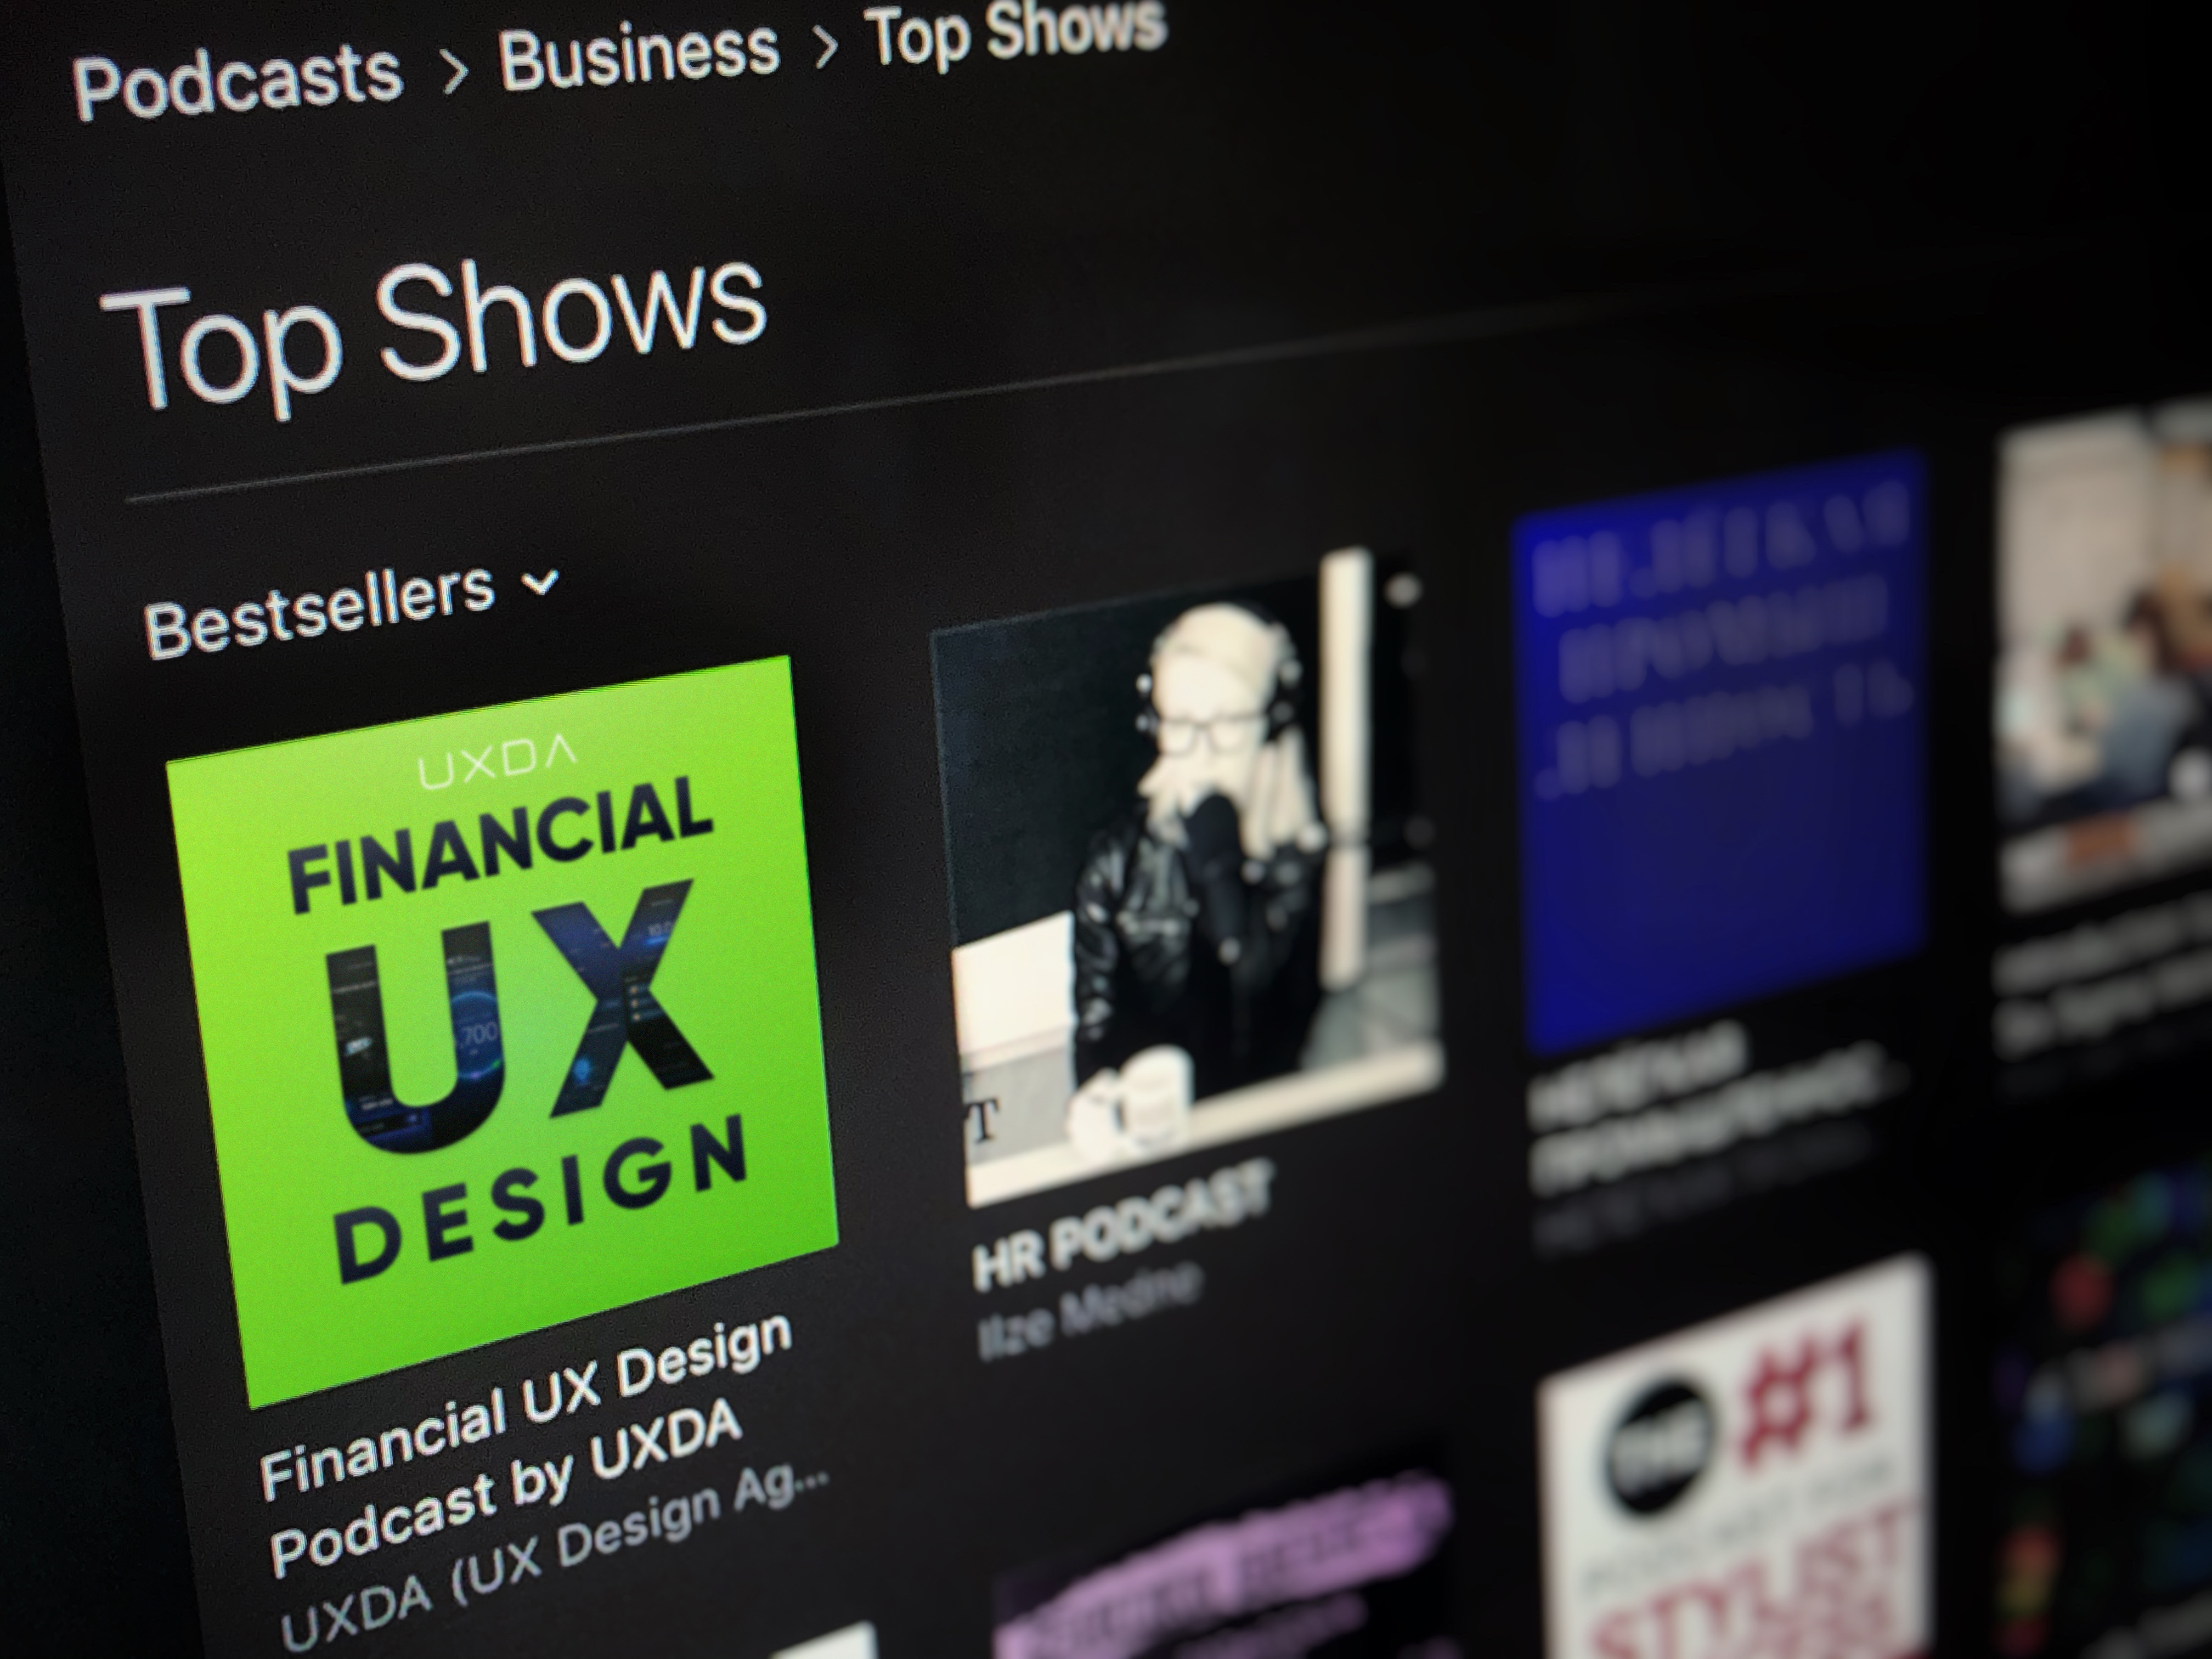 fiancial-ux-design-podcast-top.jpg